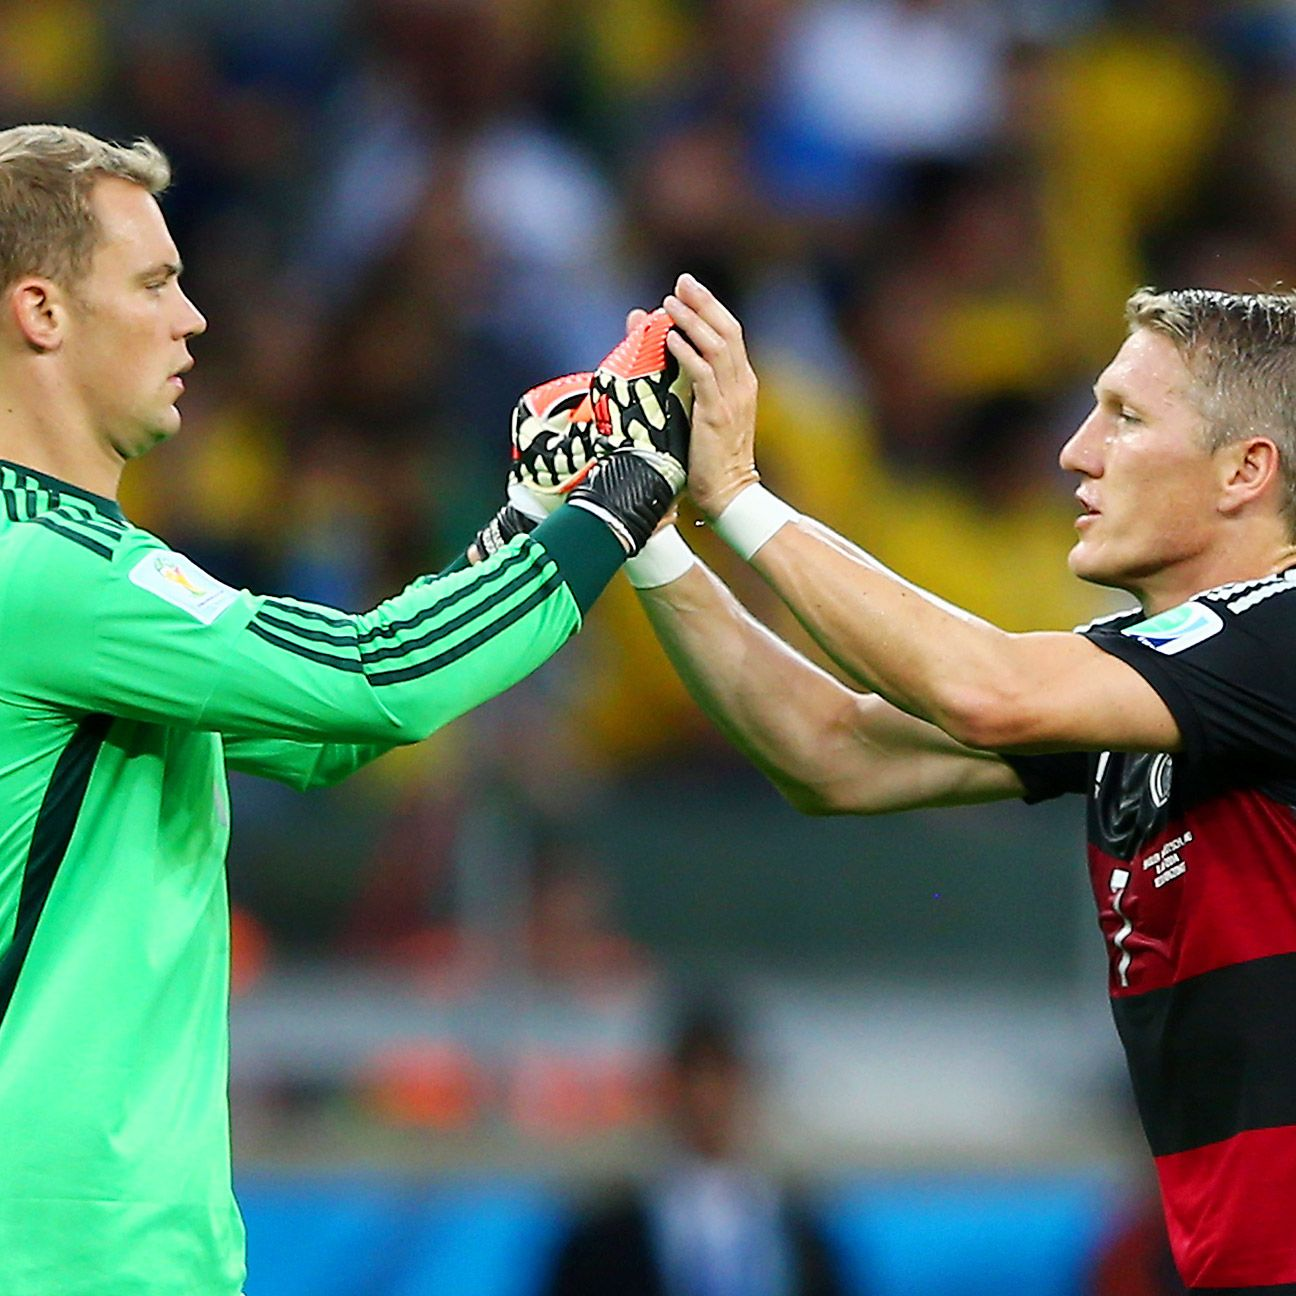 Who should replace Lahm as German captain? Schweinsteiger or Neuer would make the most sense.